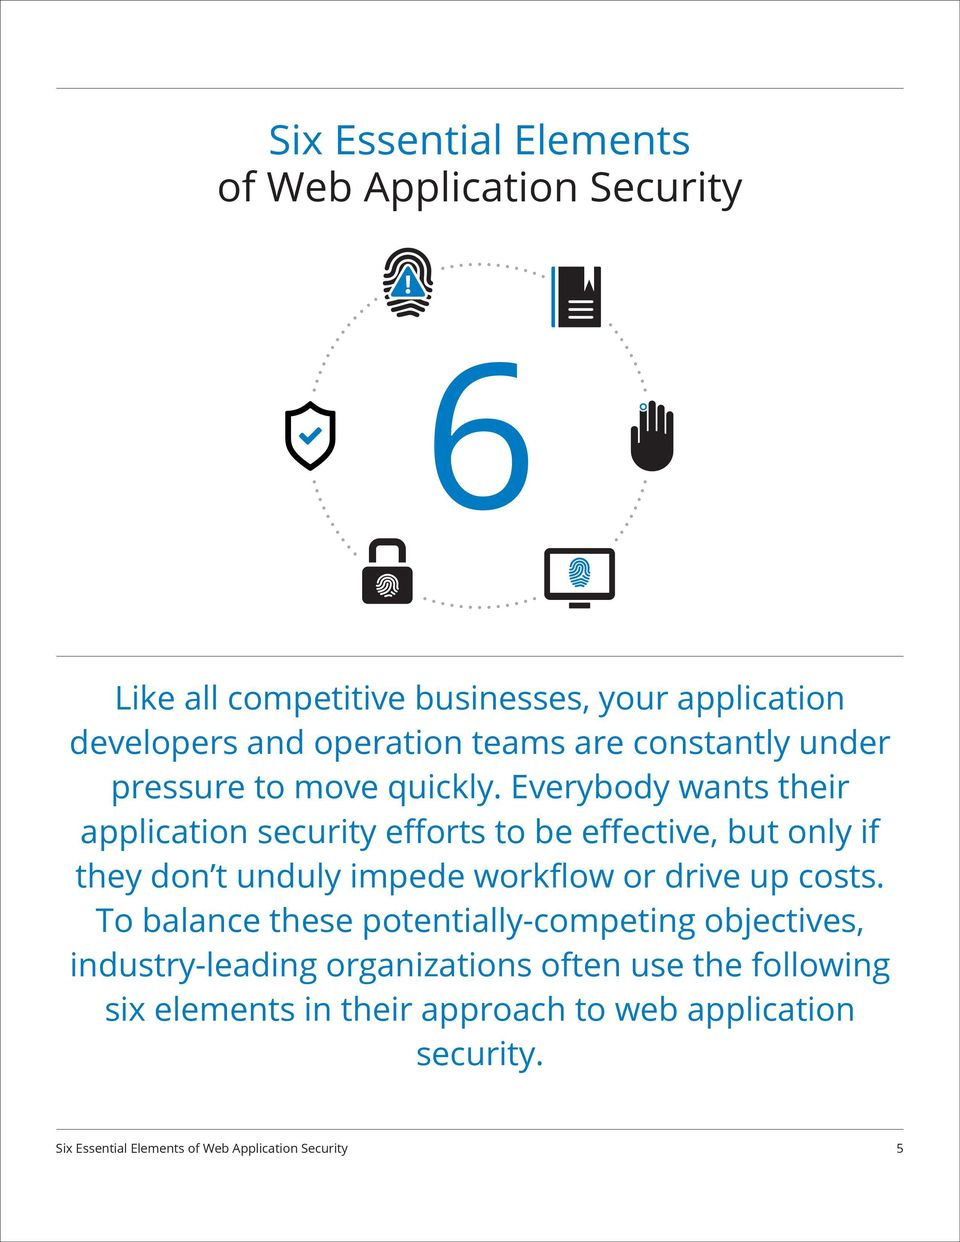 Everybody wants their application security efforts to be effective, but only if they don t unduly impede workflow or drive up costs.